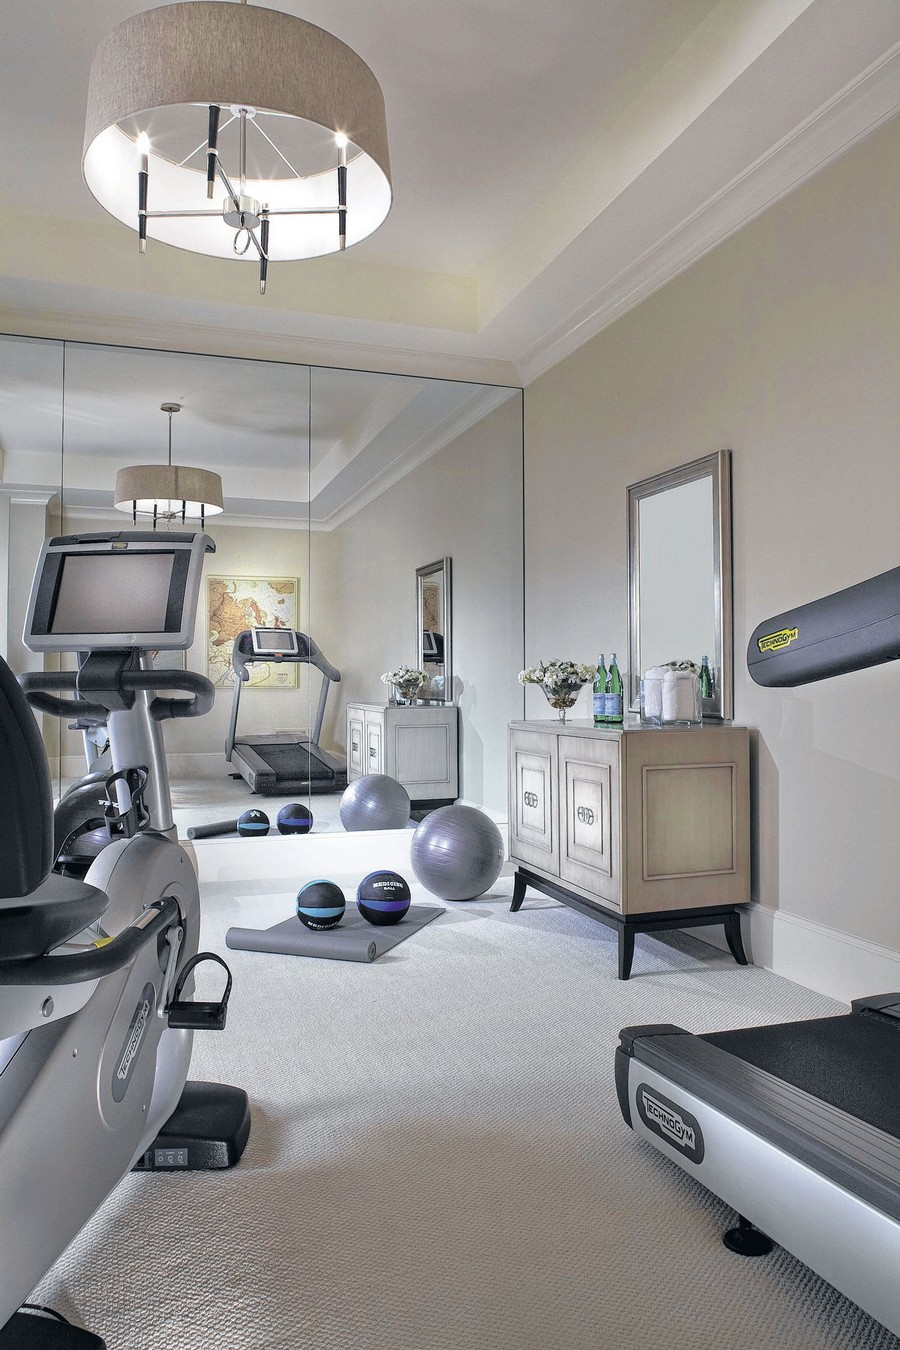 Home gym interior design tips home interior design kitchen and bathroom designs architecture Help design kitchen colors